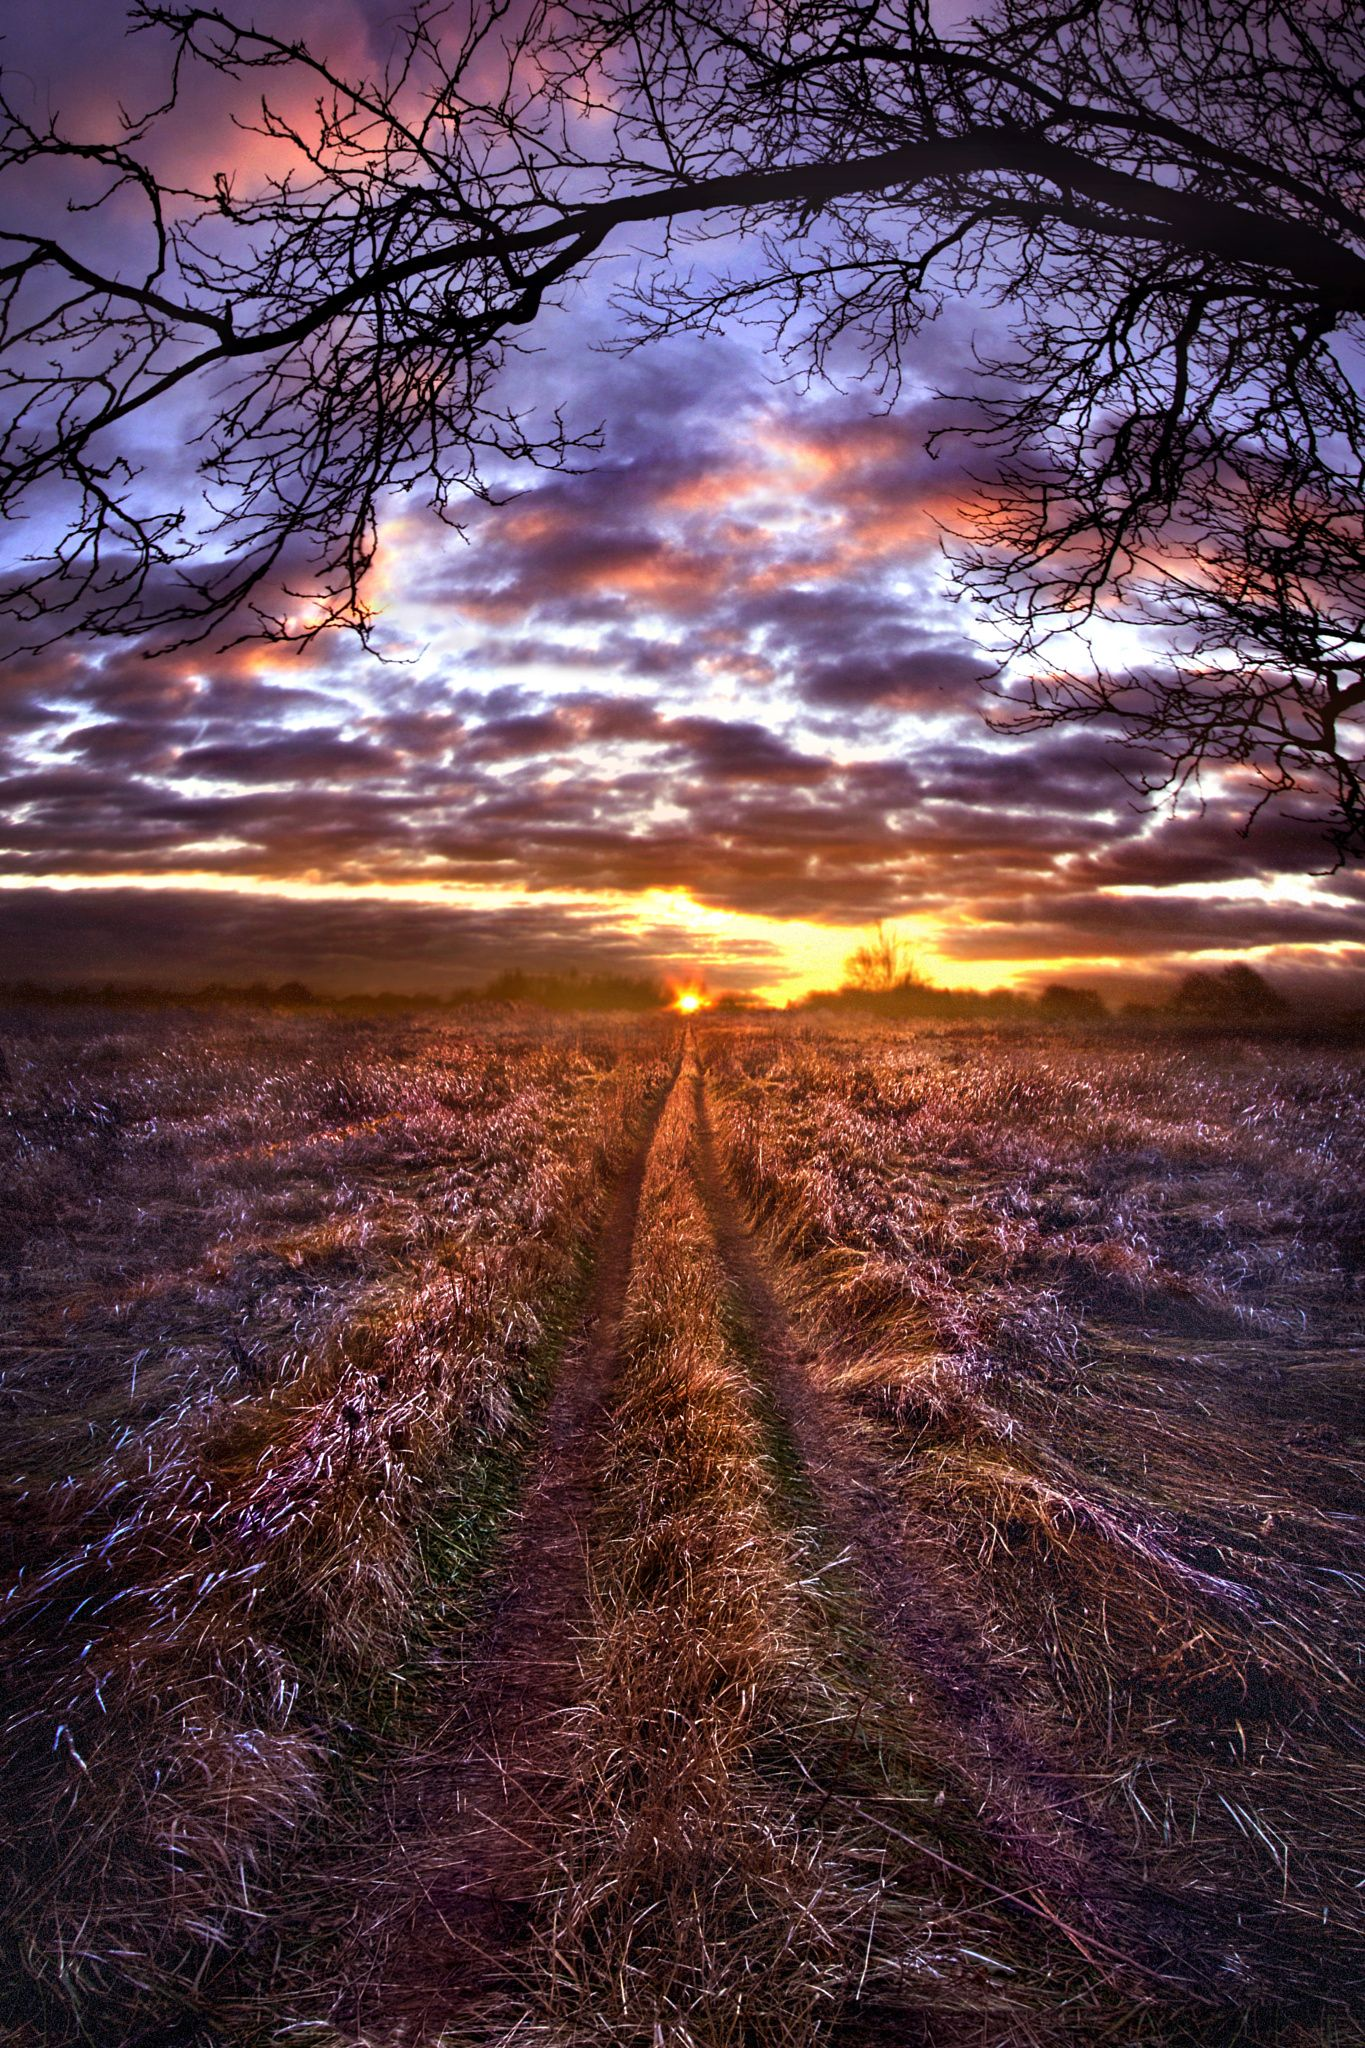 ~~To The Place I Belong   sunrise in Wisconsin   by Phil Koch~~